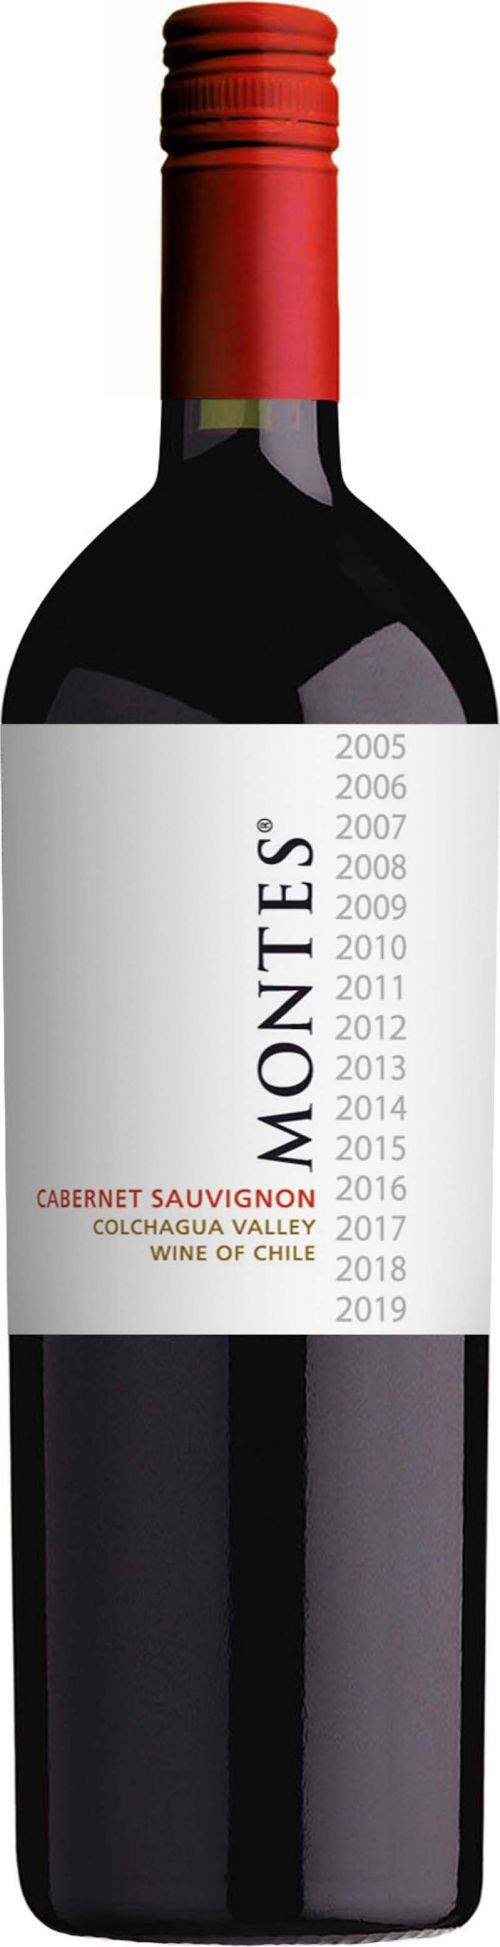 Villa Montes, Central Valley Cabernet Sauvignon 2016